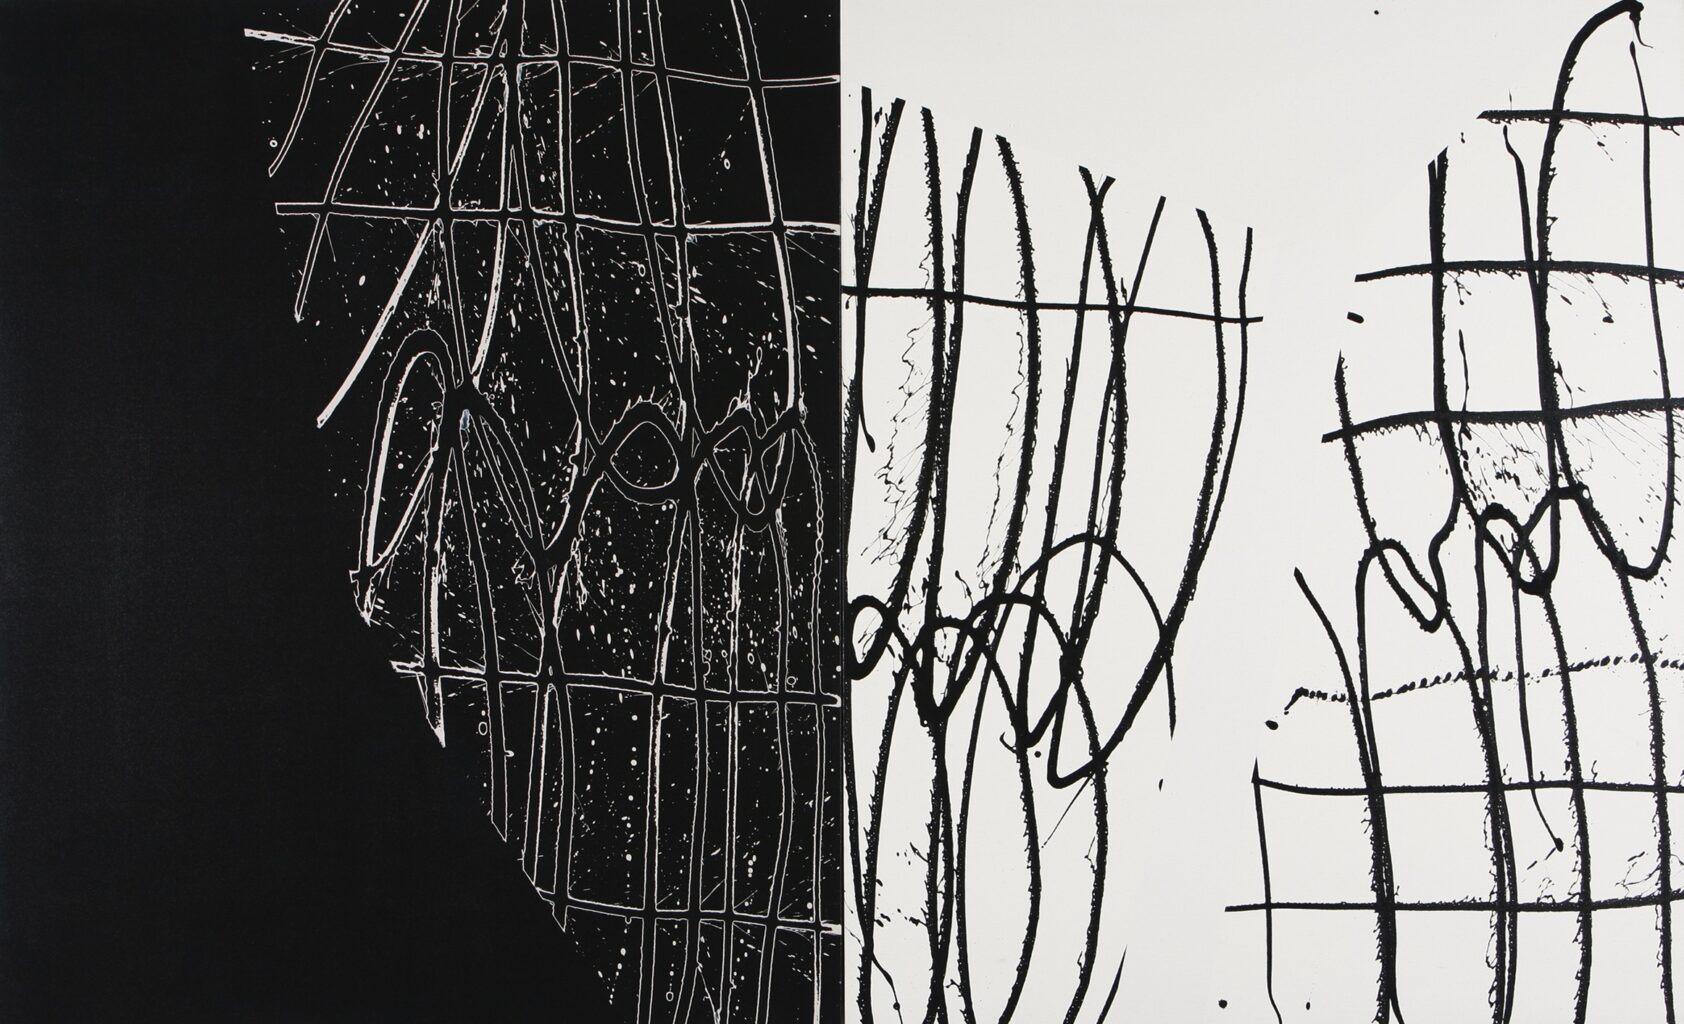 Fulcrum, 2003 by Ed Moses